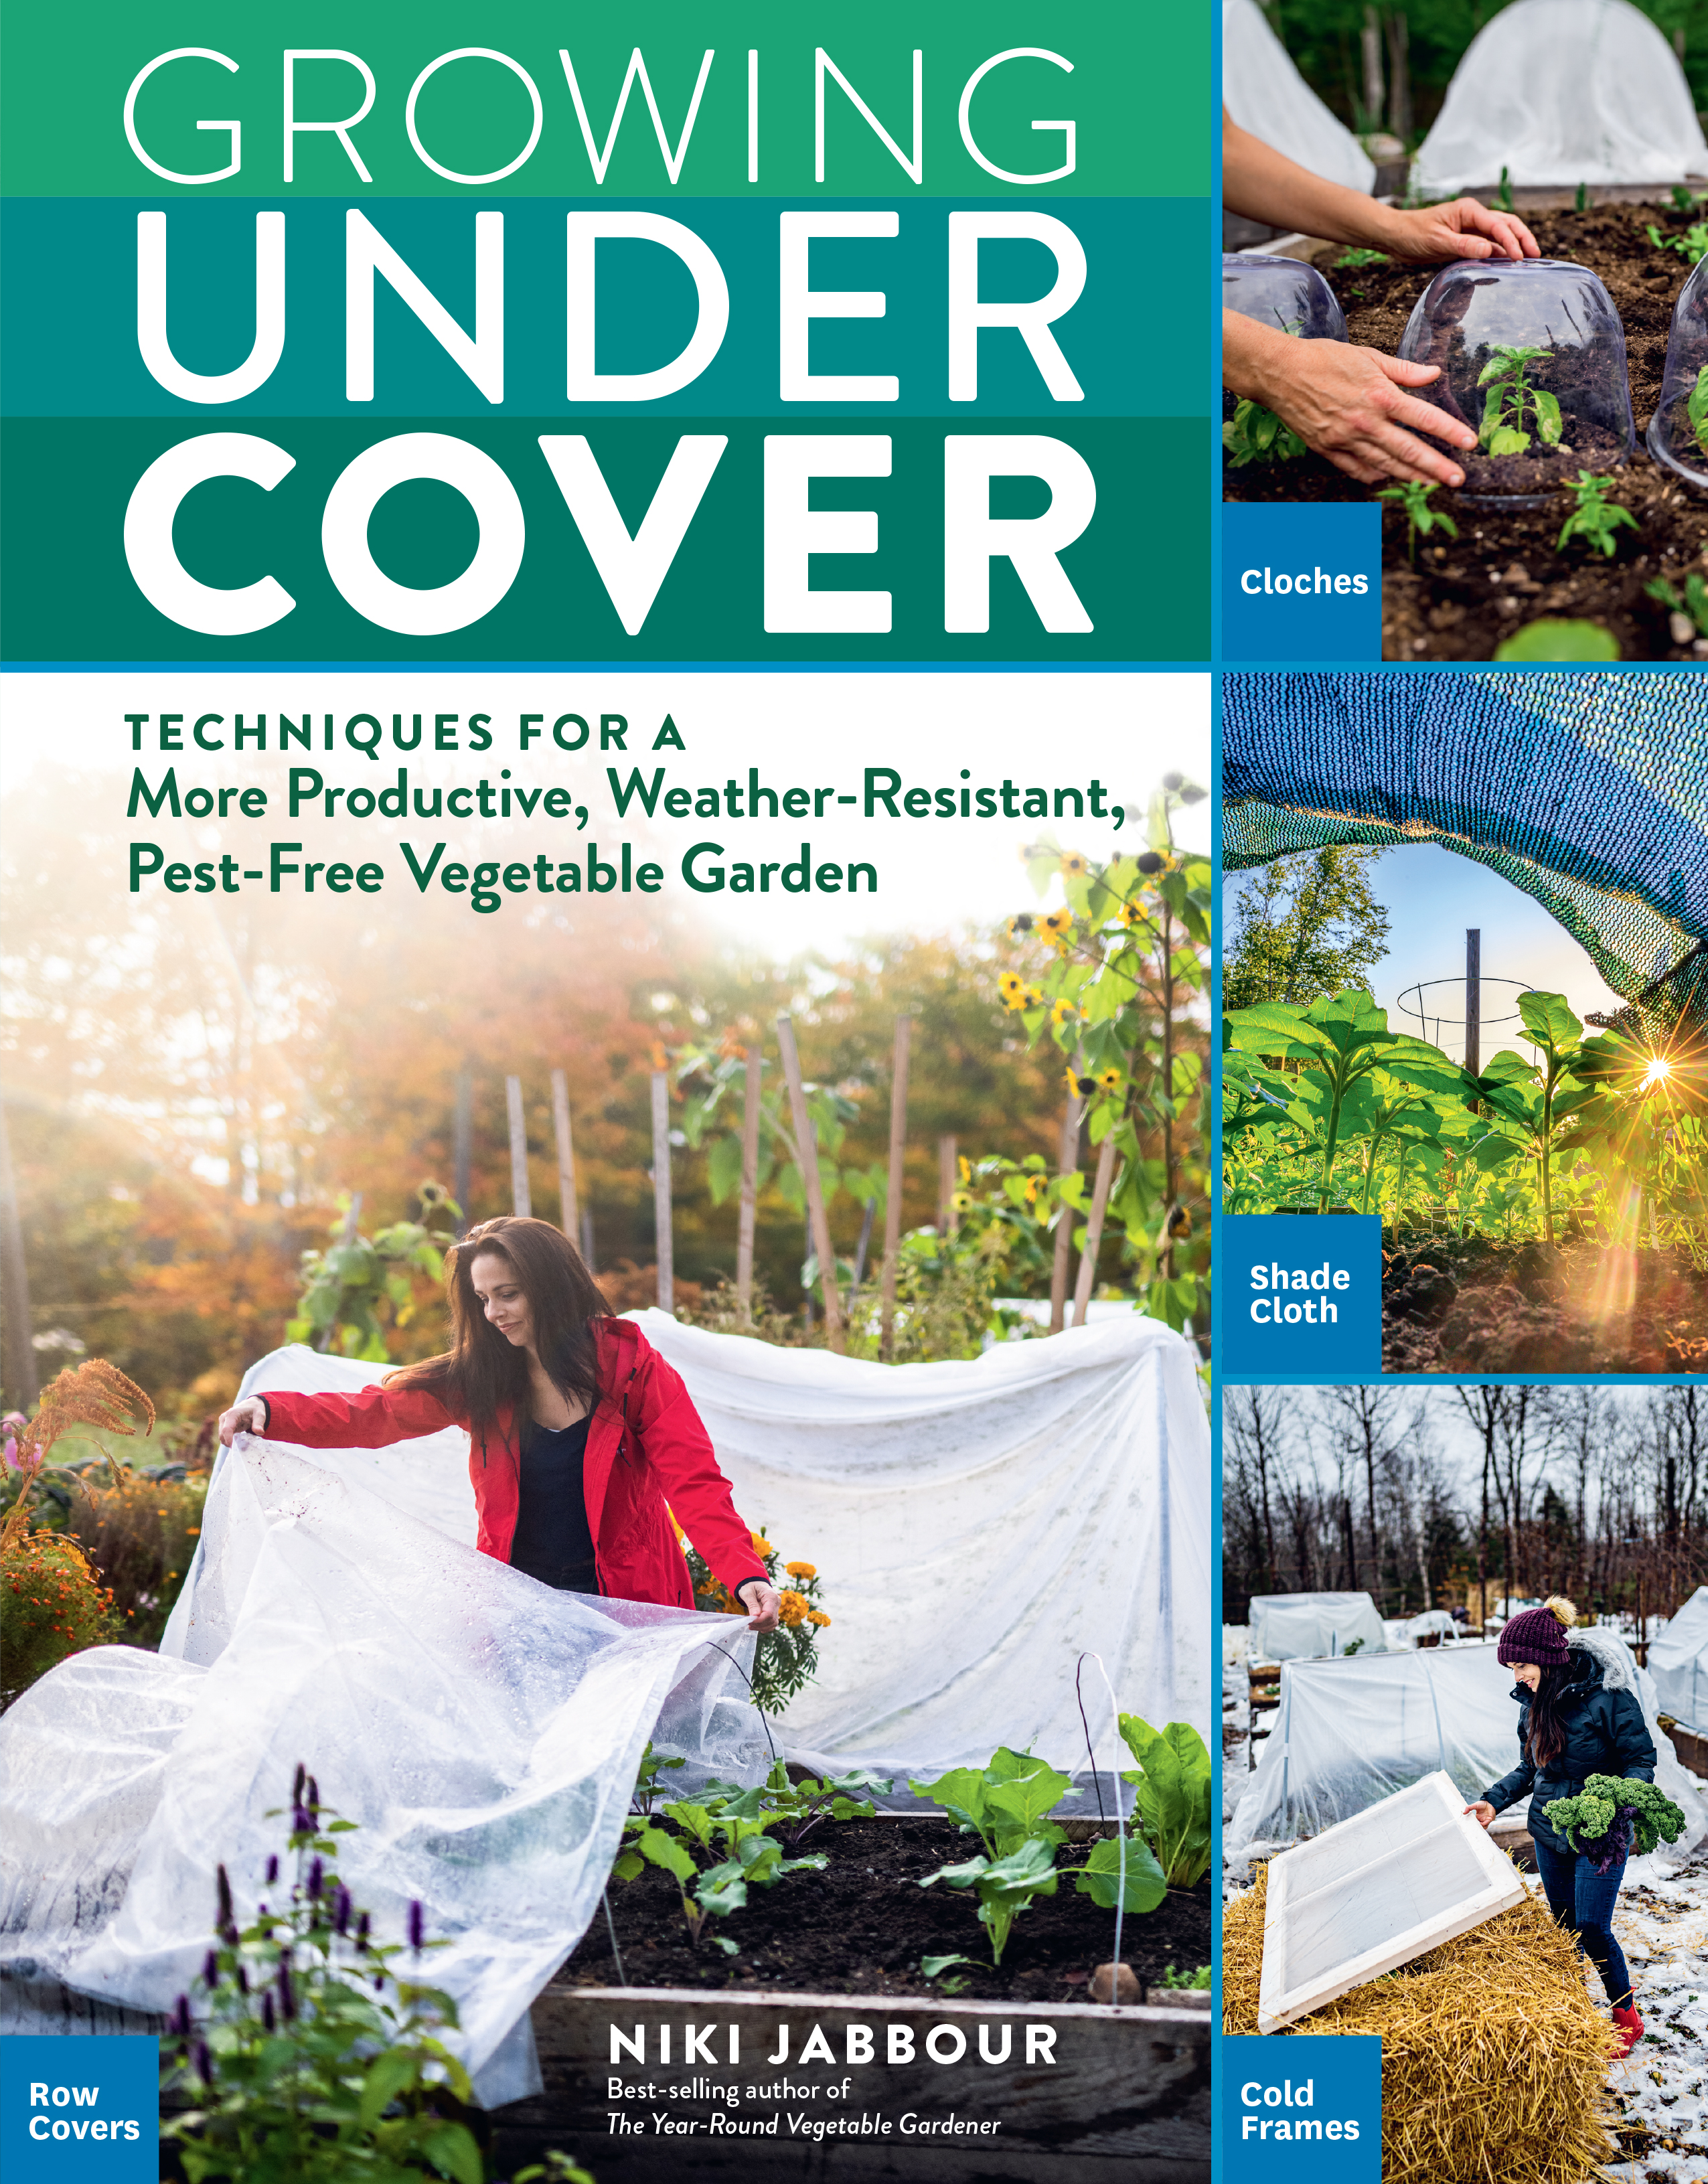 Growing Under Cover Techniques for a More Productive, Weather-Resistant, Pest-Free Vegetable Garden - Niki Jabbour